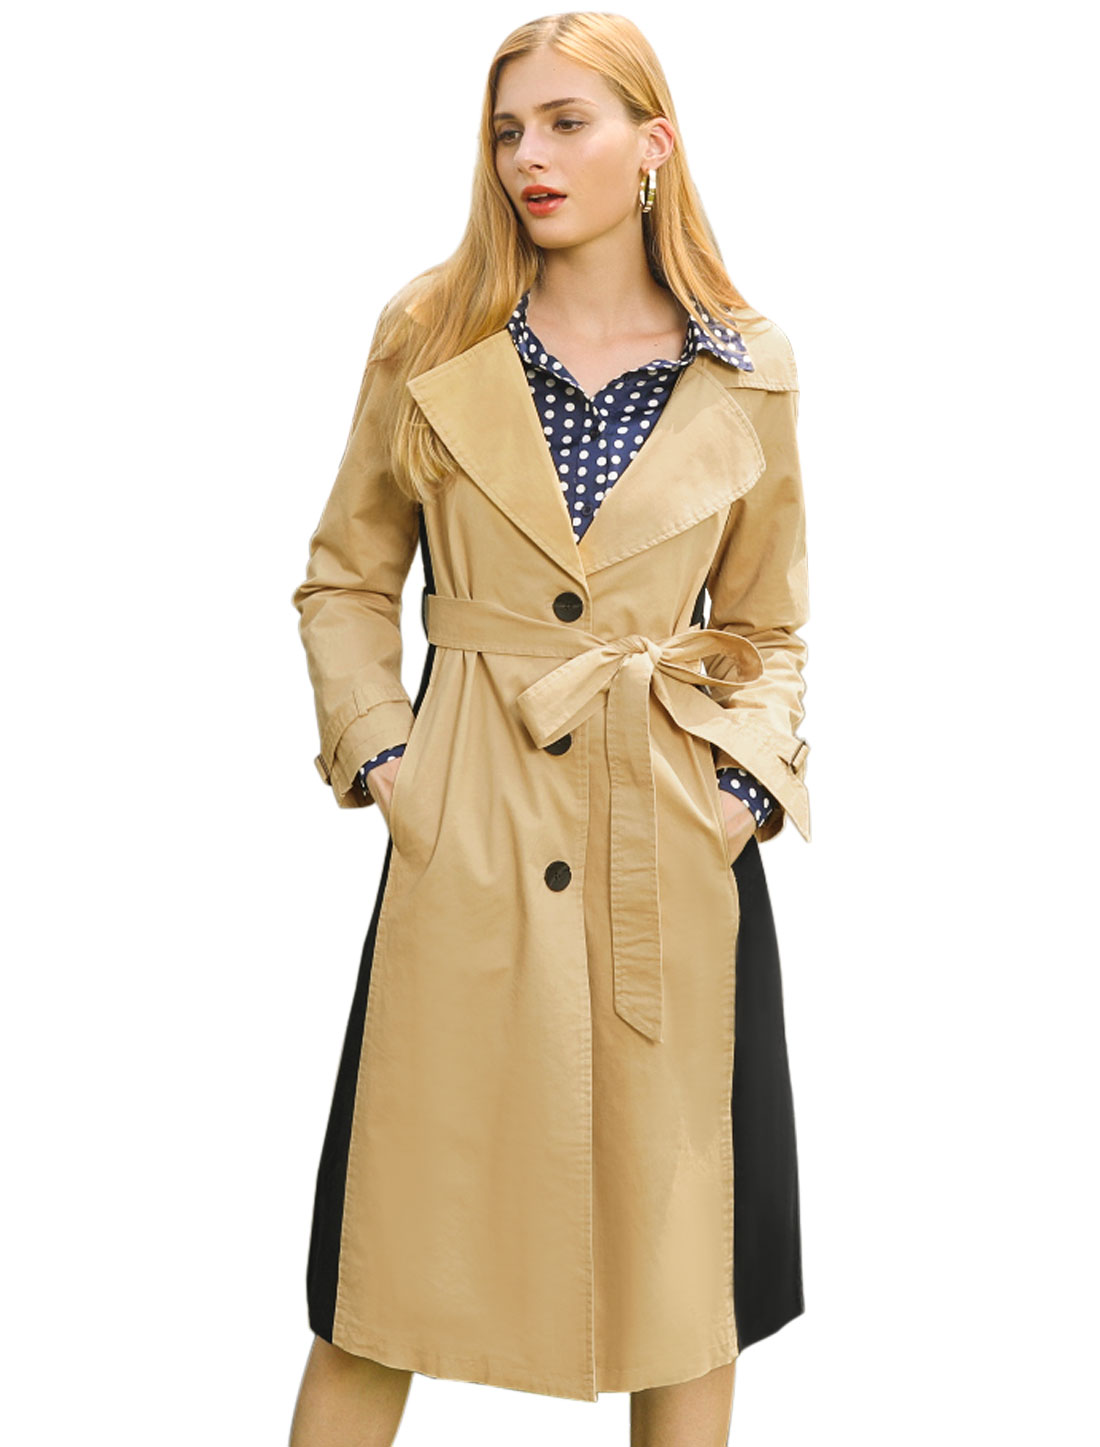 Women's Notched Lapel Long Jacket Contrast Color Belted Trench Coat Khaki XS